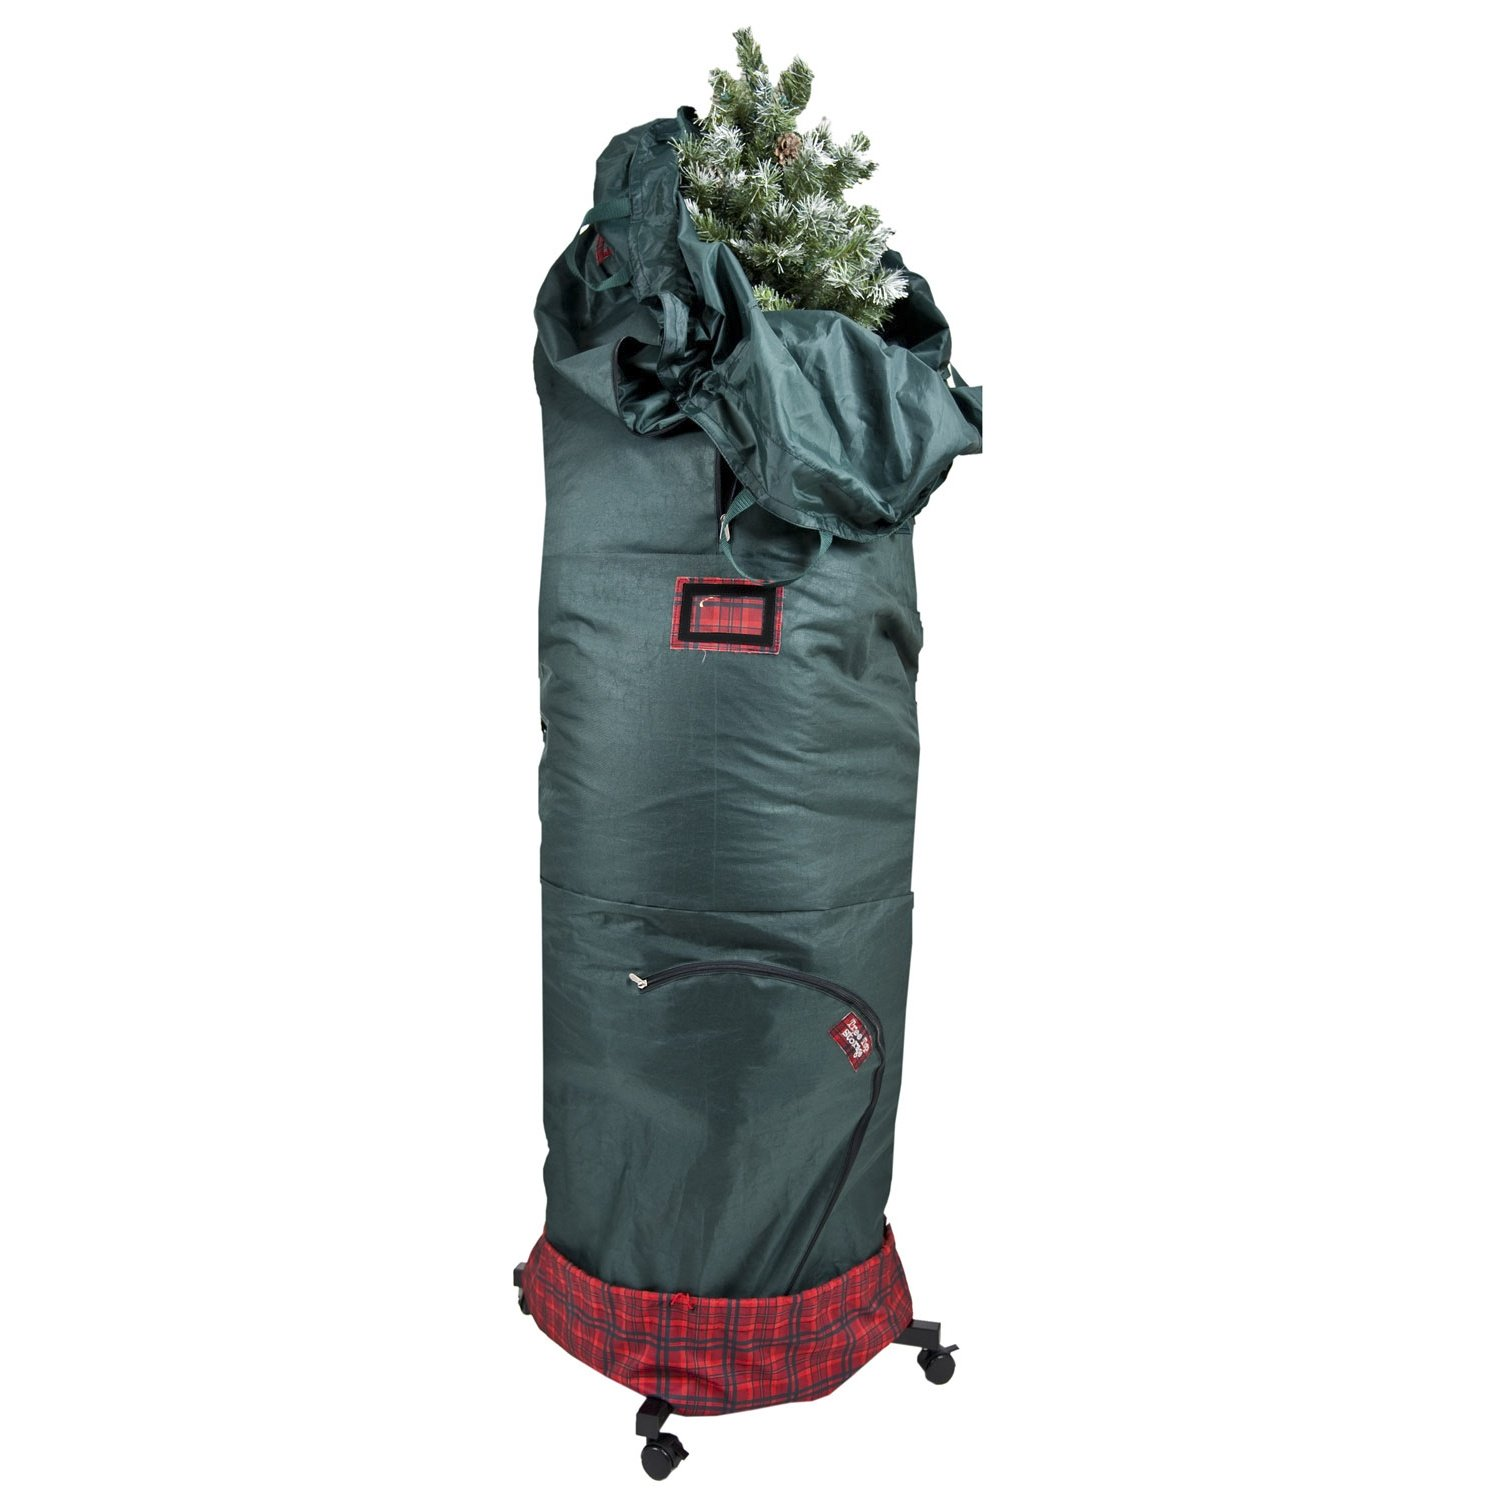 Treekeeper Pro Upright Storage bag